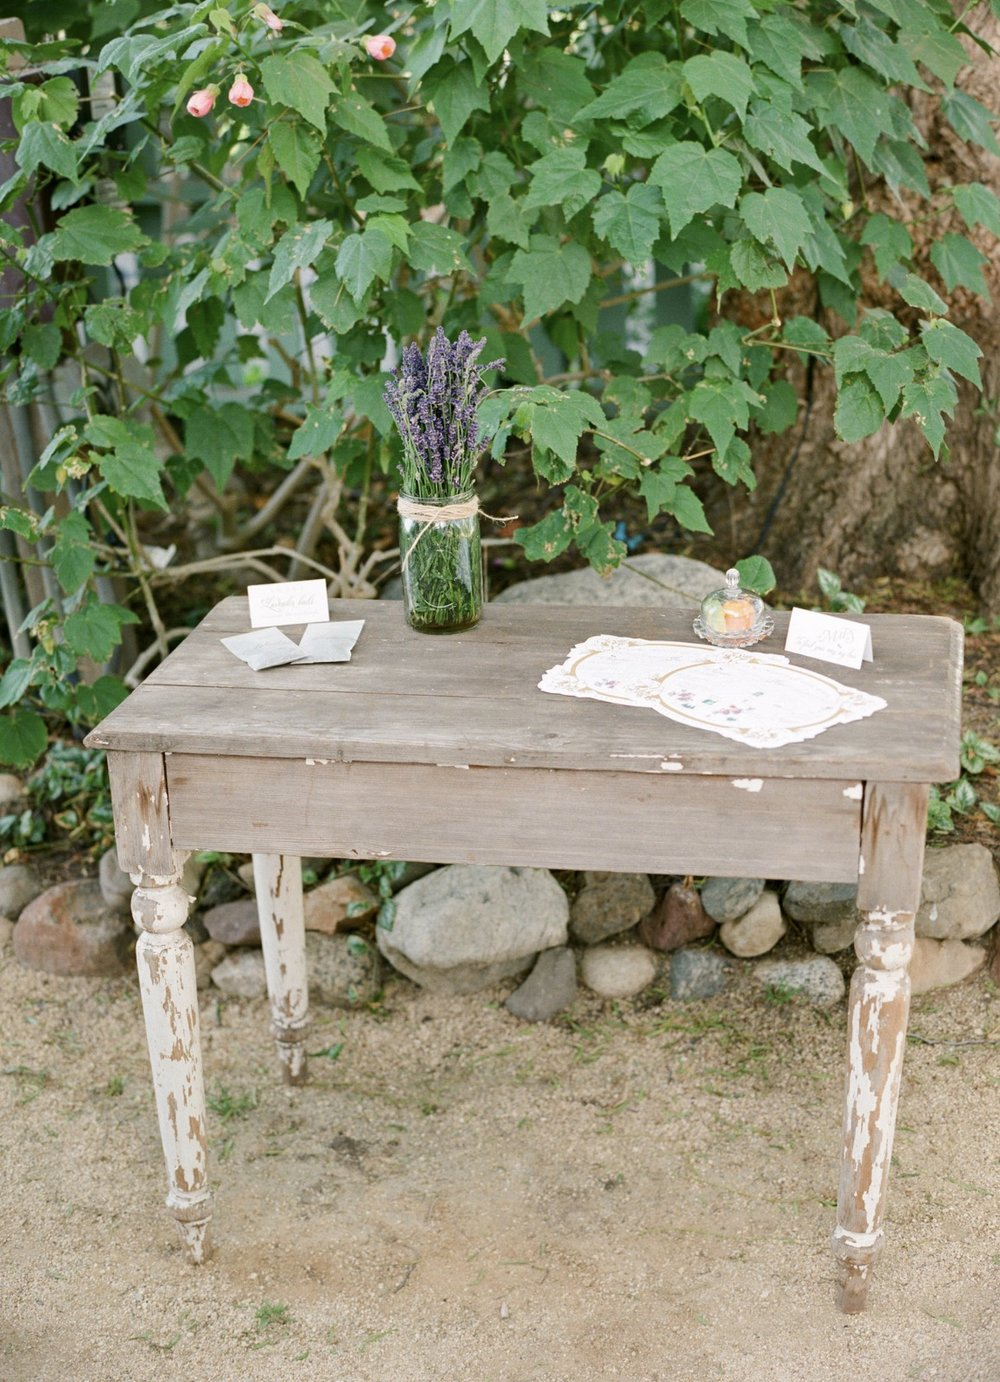 MEDIUM RUSTIC ACCENT TABLE - $50